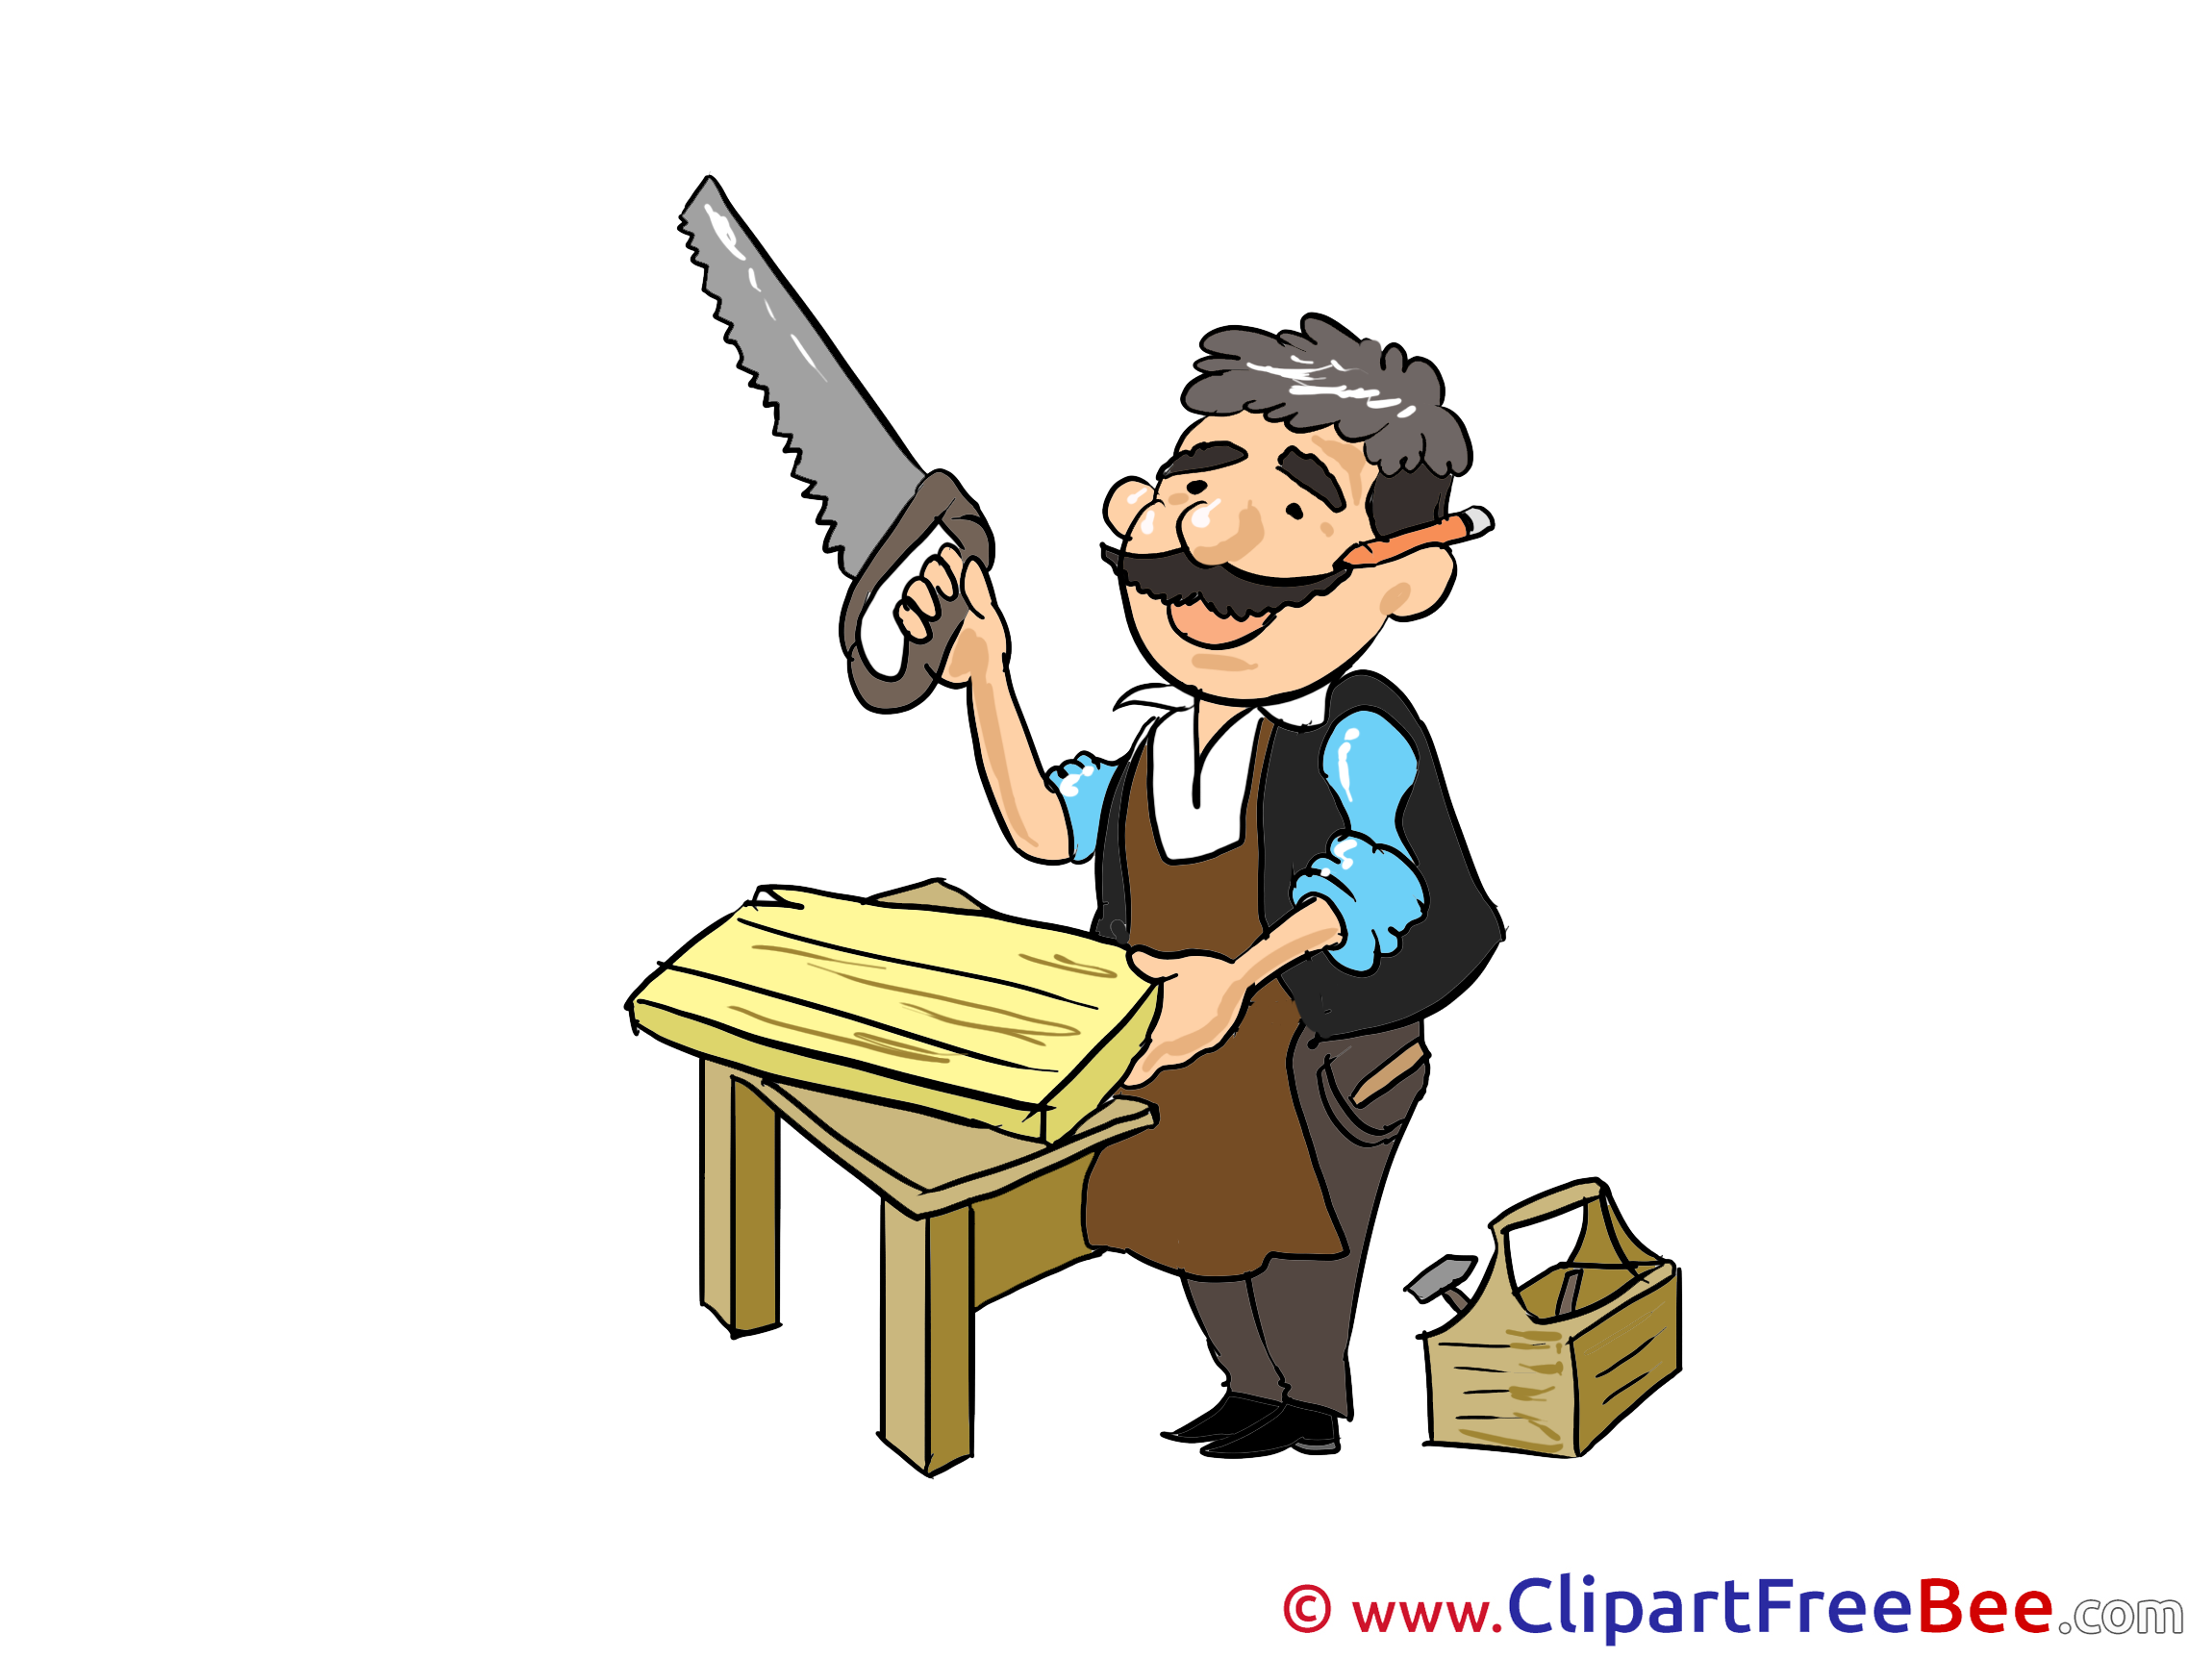 Carpentry clipart woodworker, Carpentry woodworker Transparent FREE for  download on WebStockReview 2020